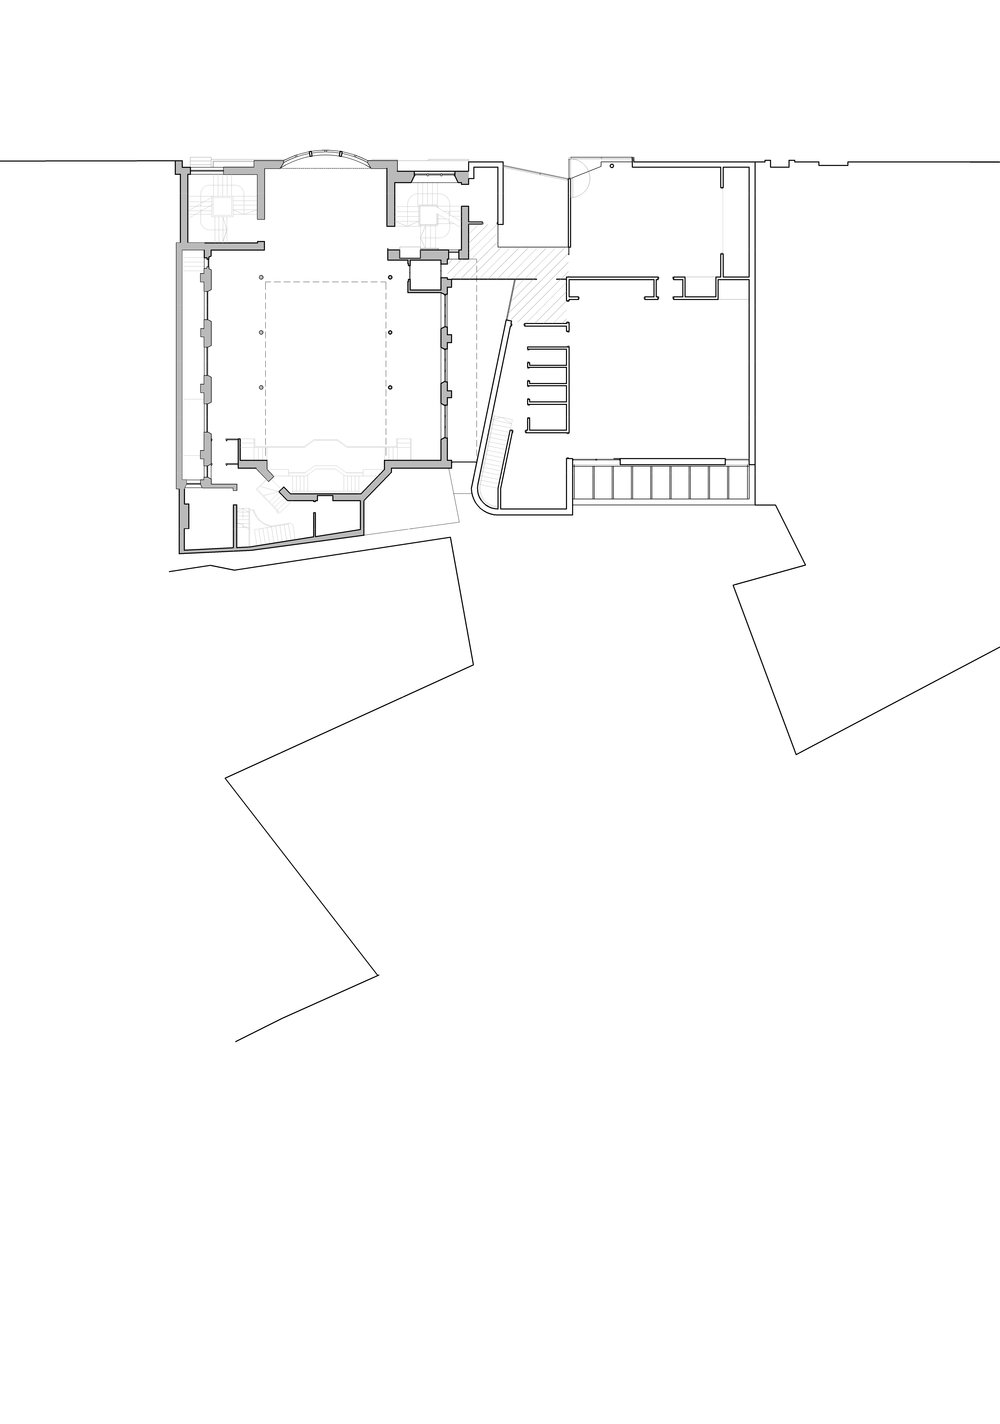 190 Dundee Baptists first floor plan 1.jpg